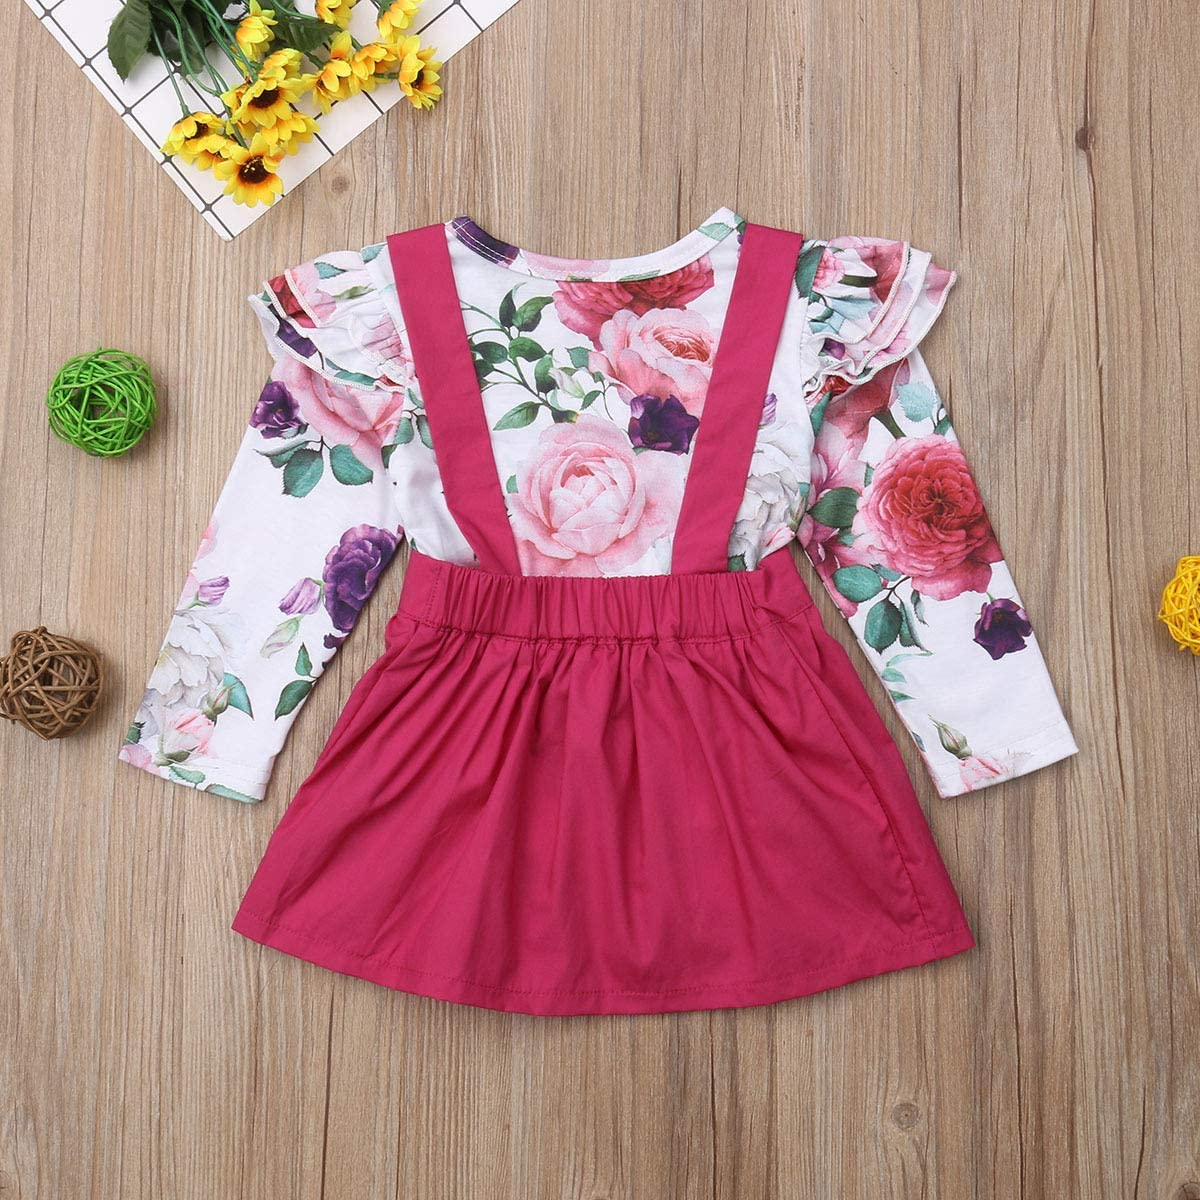 Newborn Baby Girls Ruffle Floral Romper Strap Skirt Dress Outfits Clothes Set